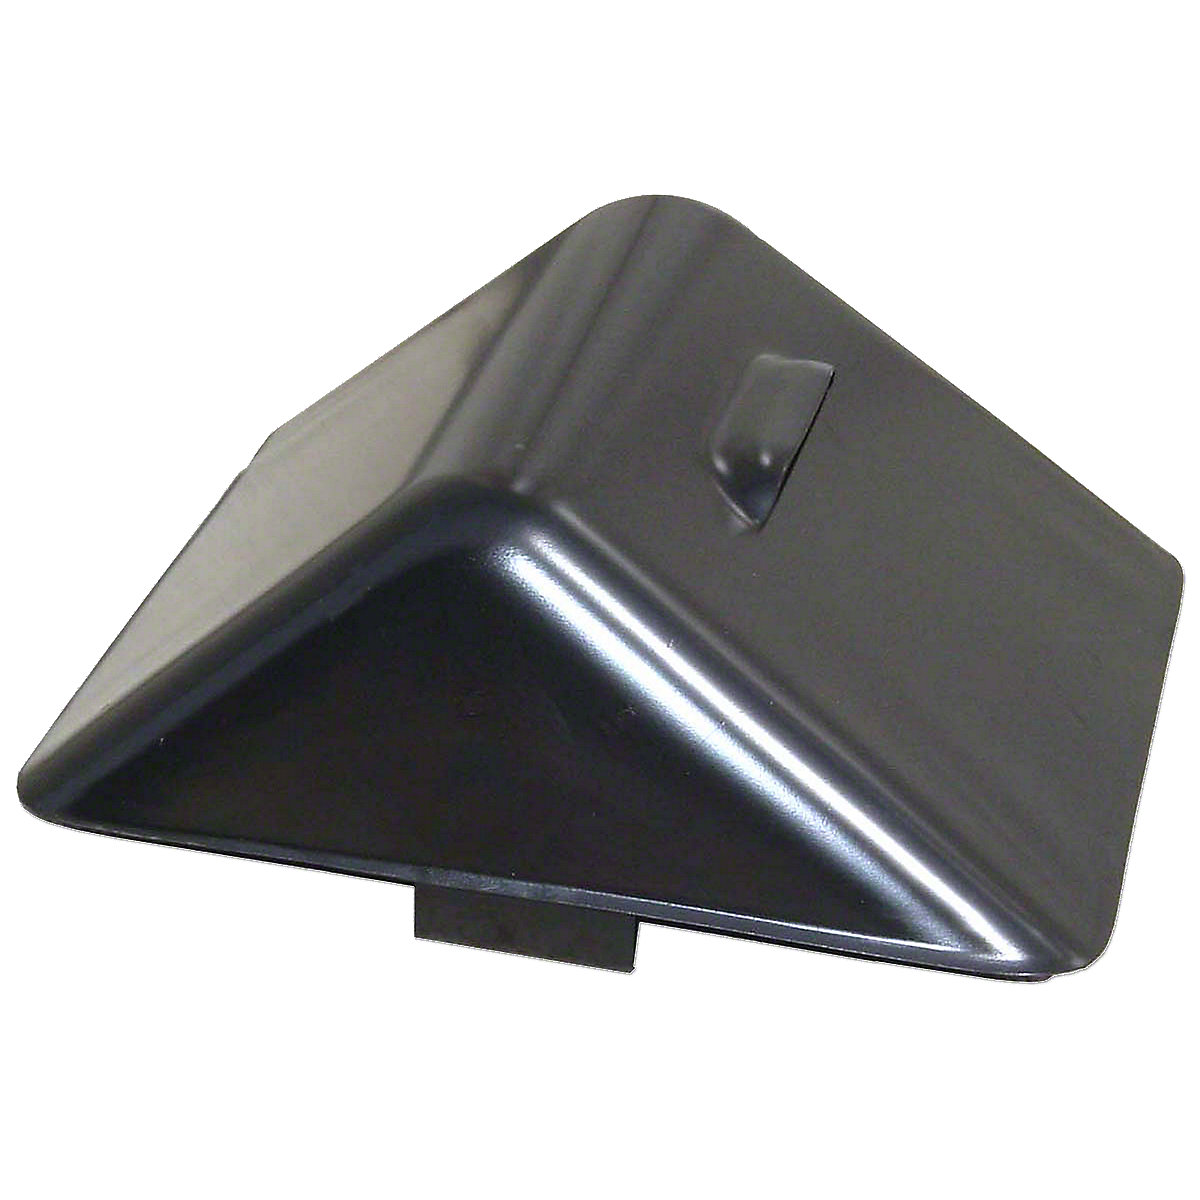 Battery Box Cover For Massey Harris: 20, 20K, 22, 22K, 81, 82.